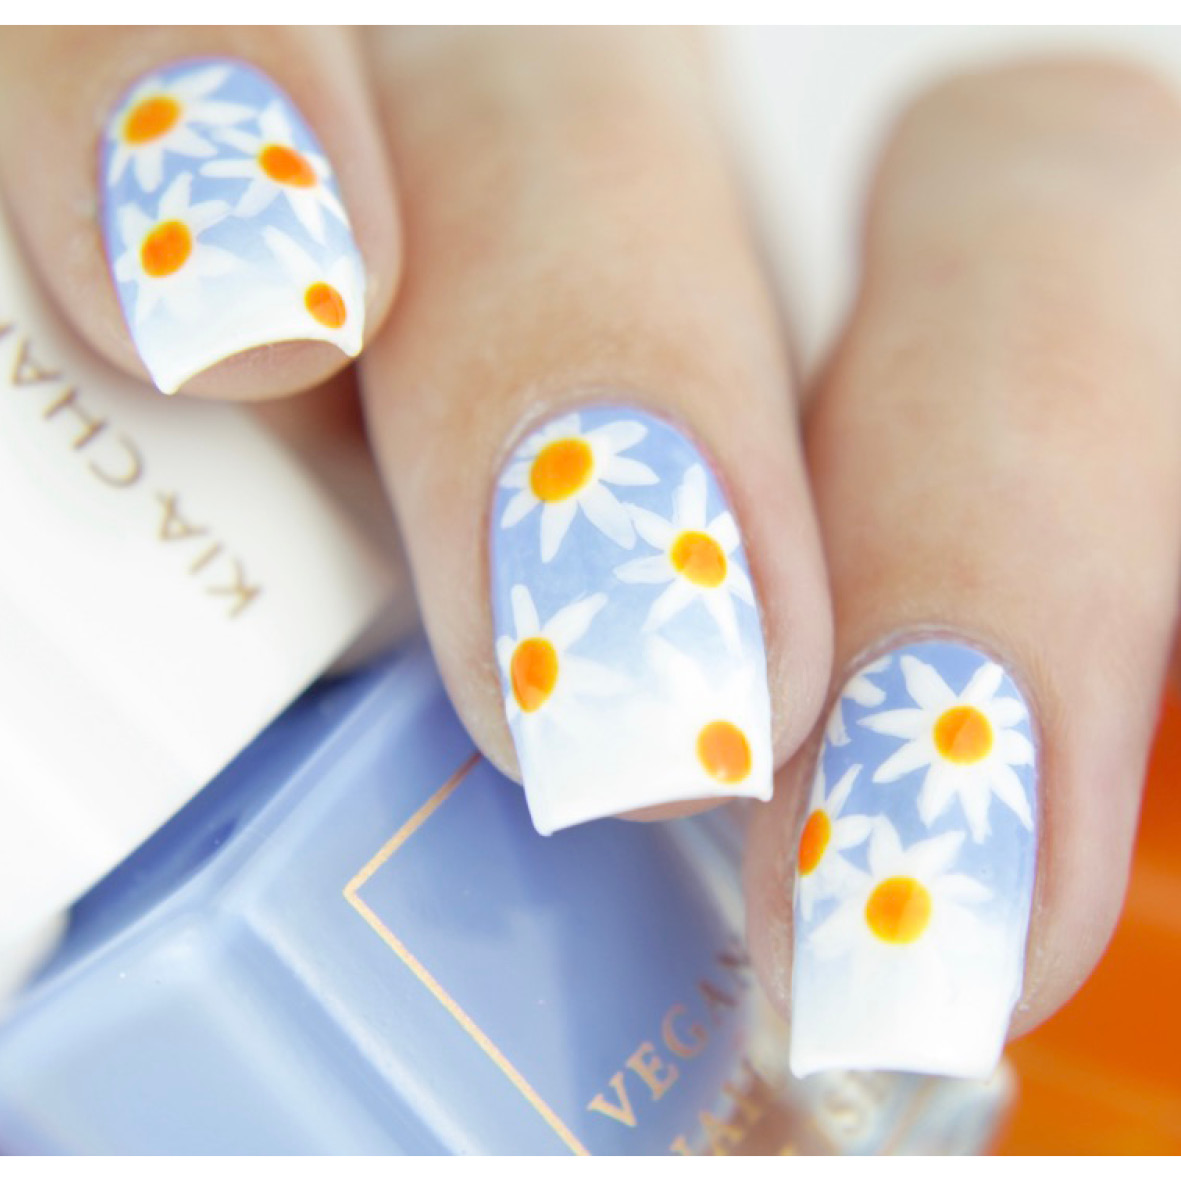 Daisy Nail Art Tutorial Vegan Beauty Blog Kia Charlotta Vegan